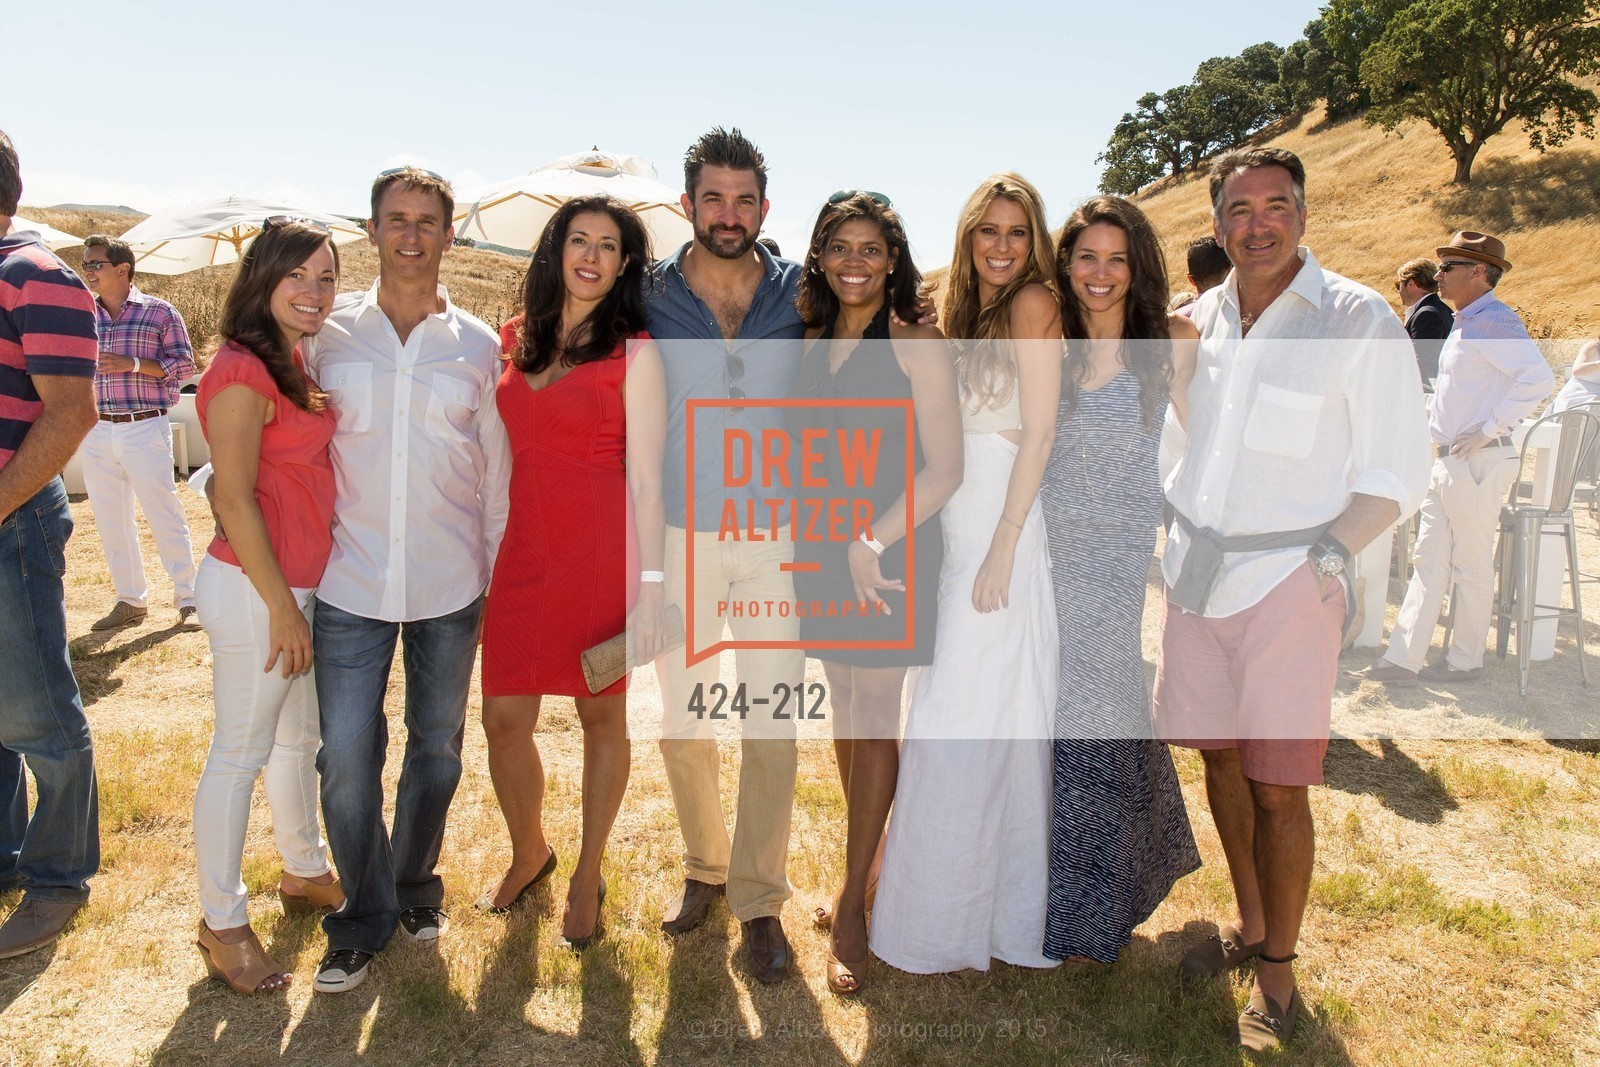 Jessica Childers, Samuel Long, Marcela DeNarvaez, Richard von Saal, Greer Wesrick, Alison Sutherland, Heidi Mullens, Michael Polenske, Stick & Ball Oyster Cup Polo Tournament, Cerro Pampa Polo Club, July 25th, 2015,Drew Altizer, Drew Altizer Photography, full-service agency, private events, San Francisco photographer, photographer california